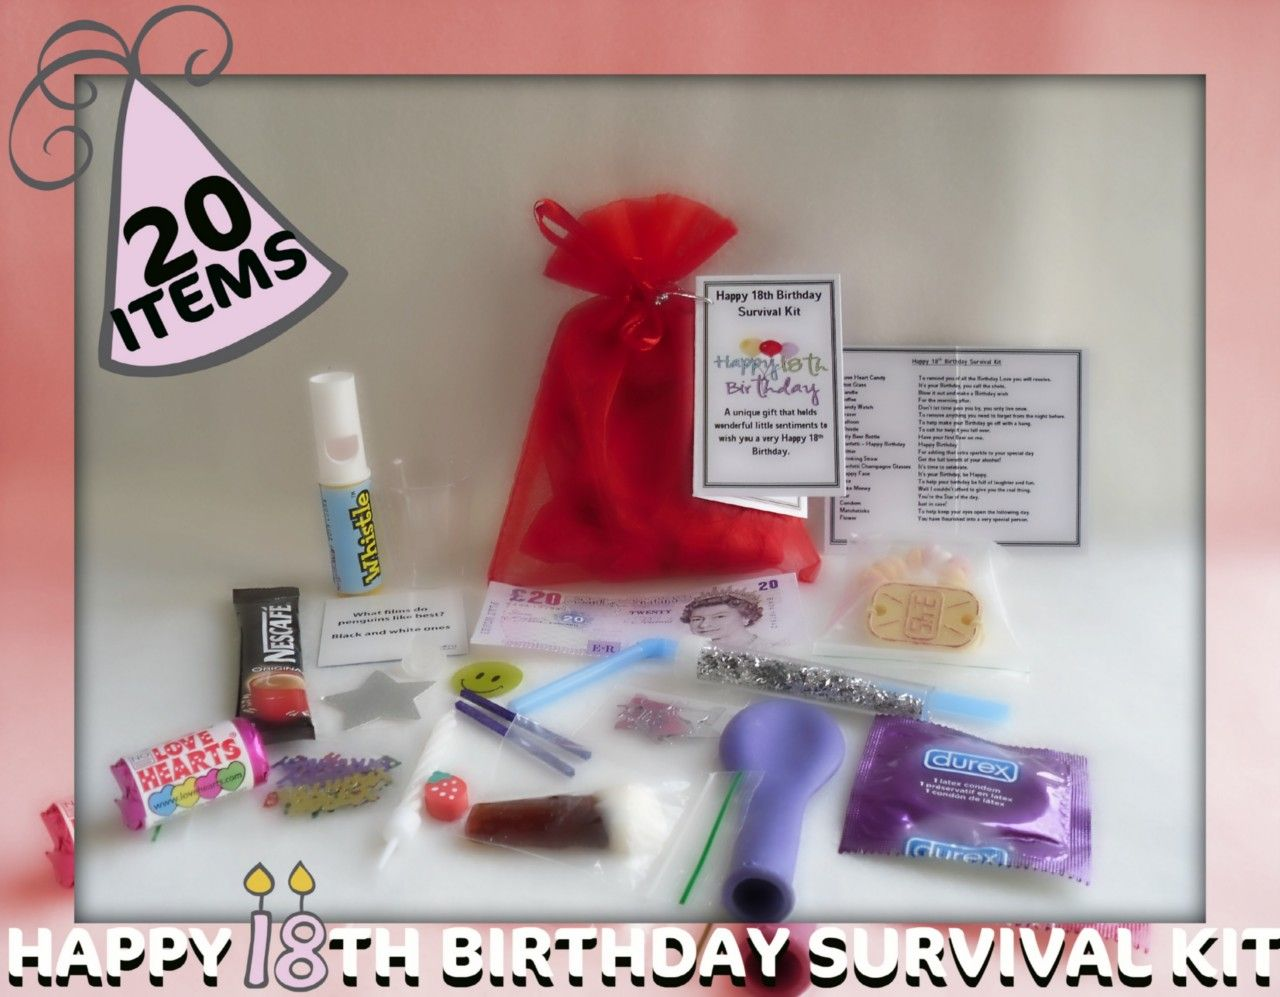 Details about Happy 18th Birthday Novelty Survival Kit. An ...